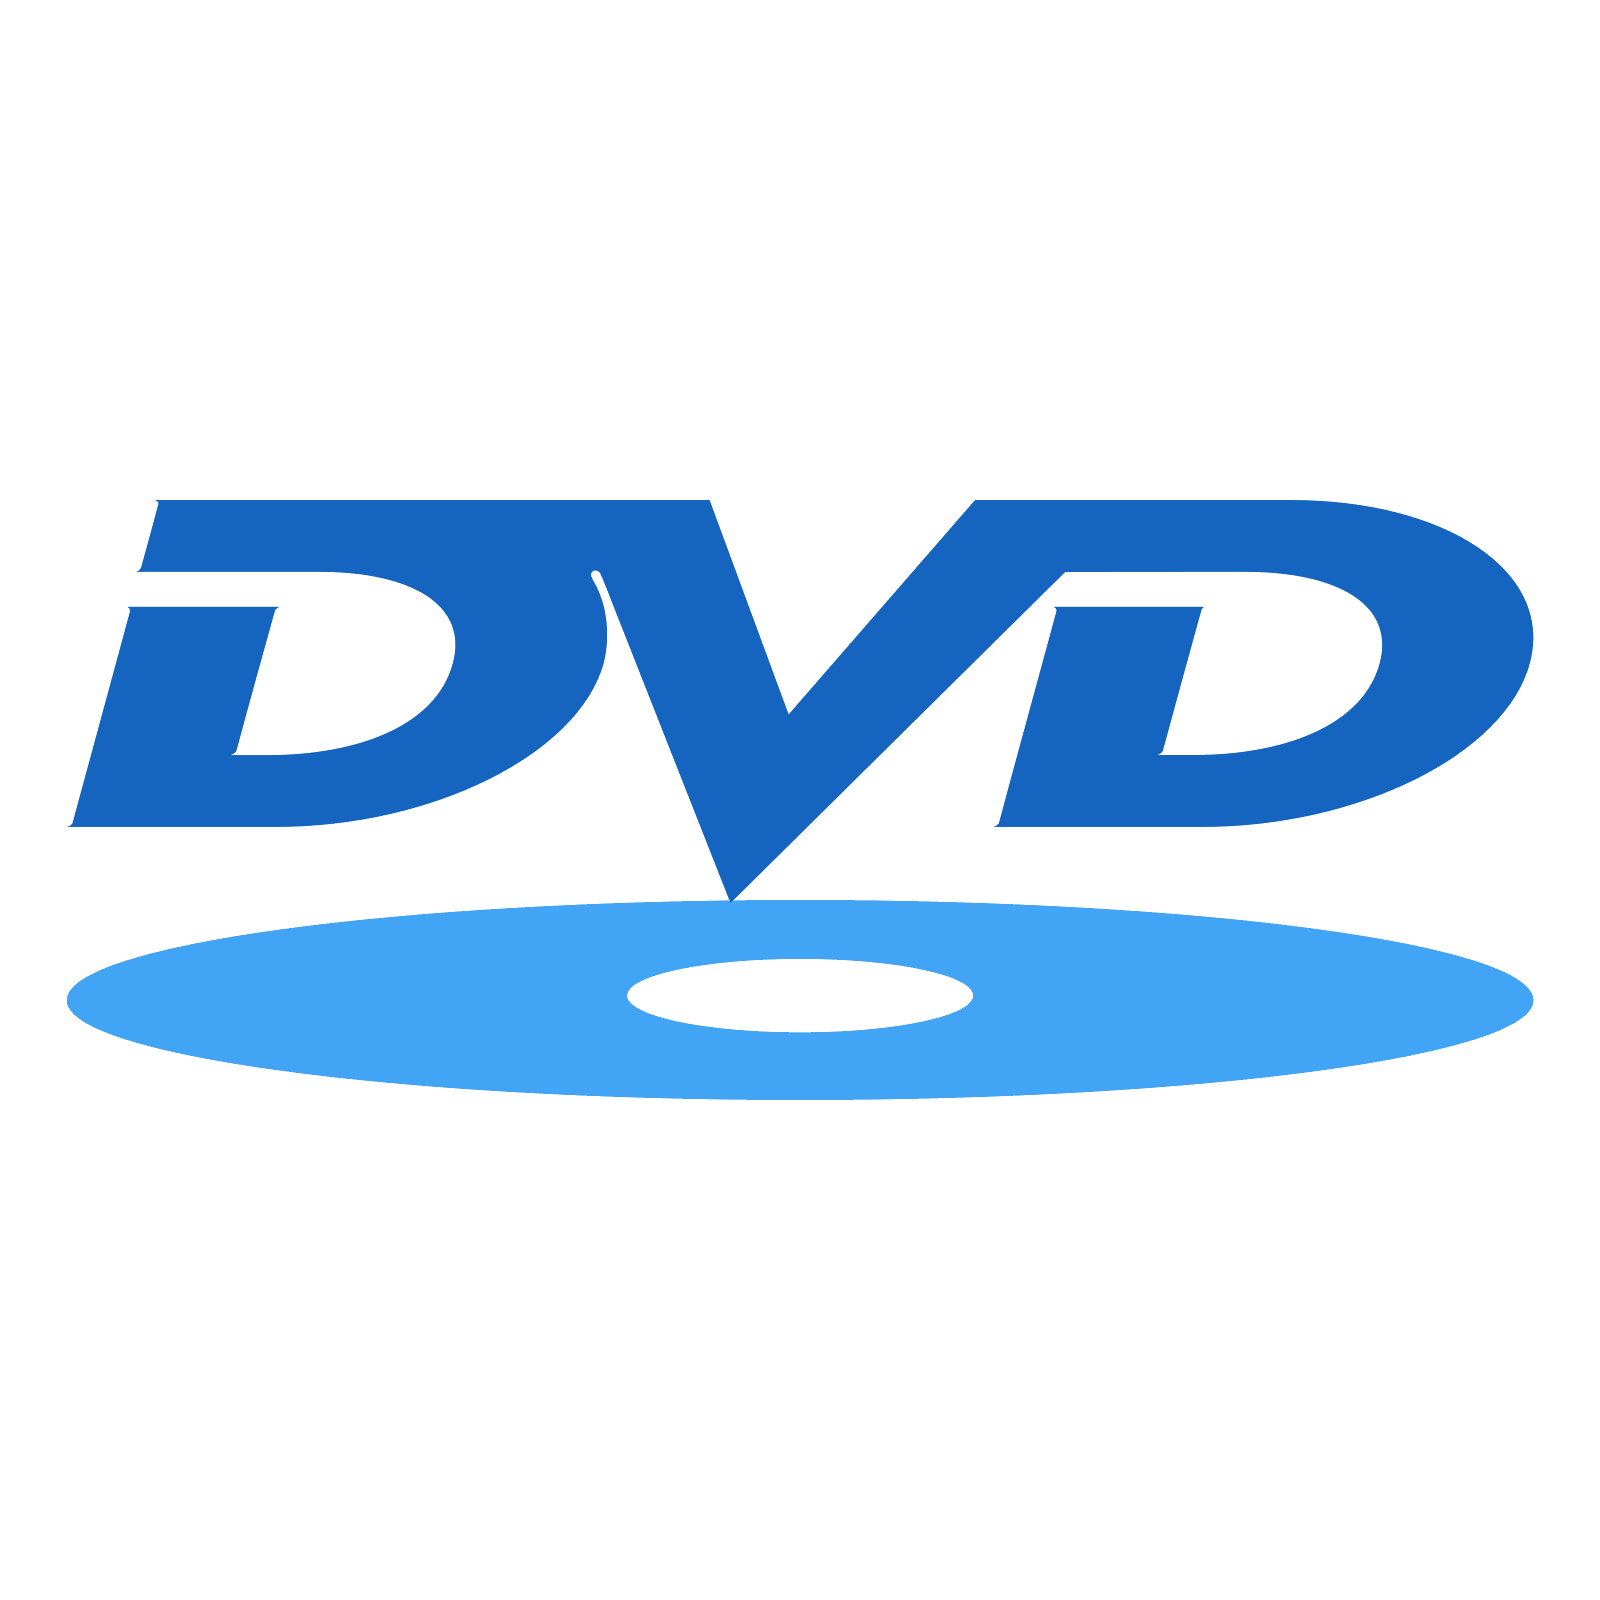 Dvd logo png. Icon free download and